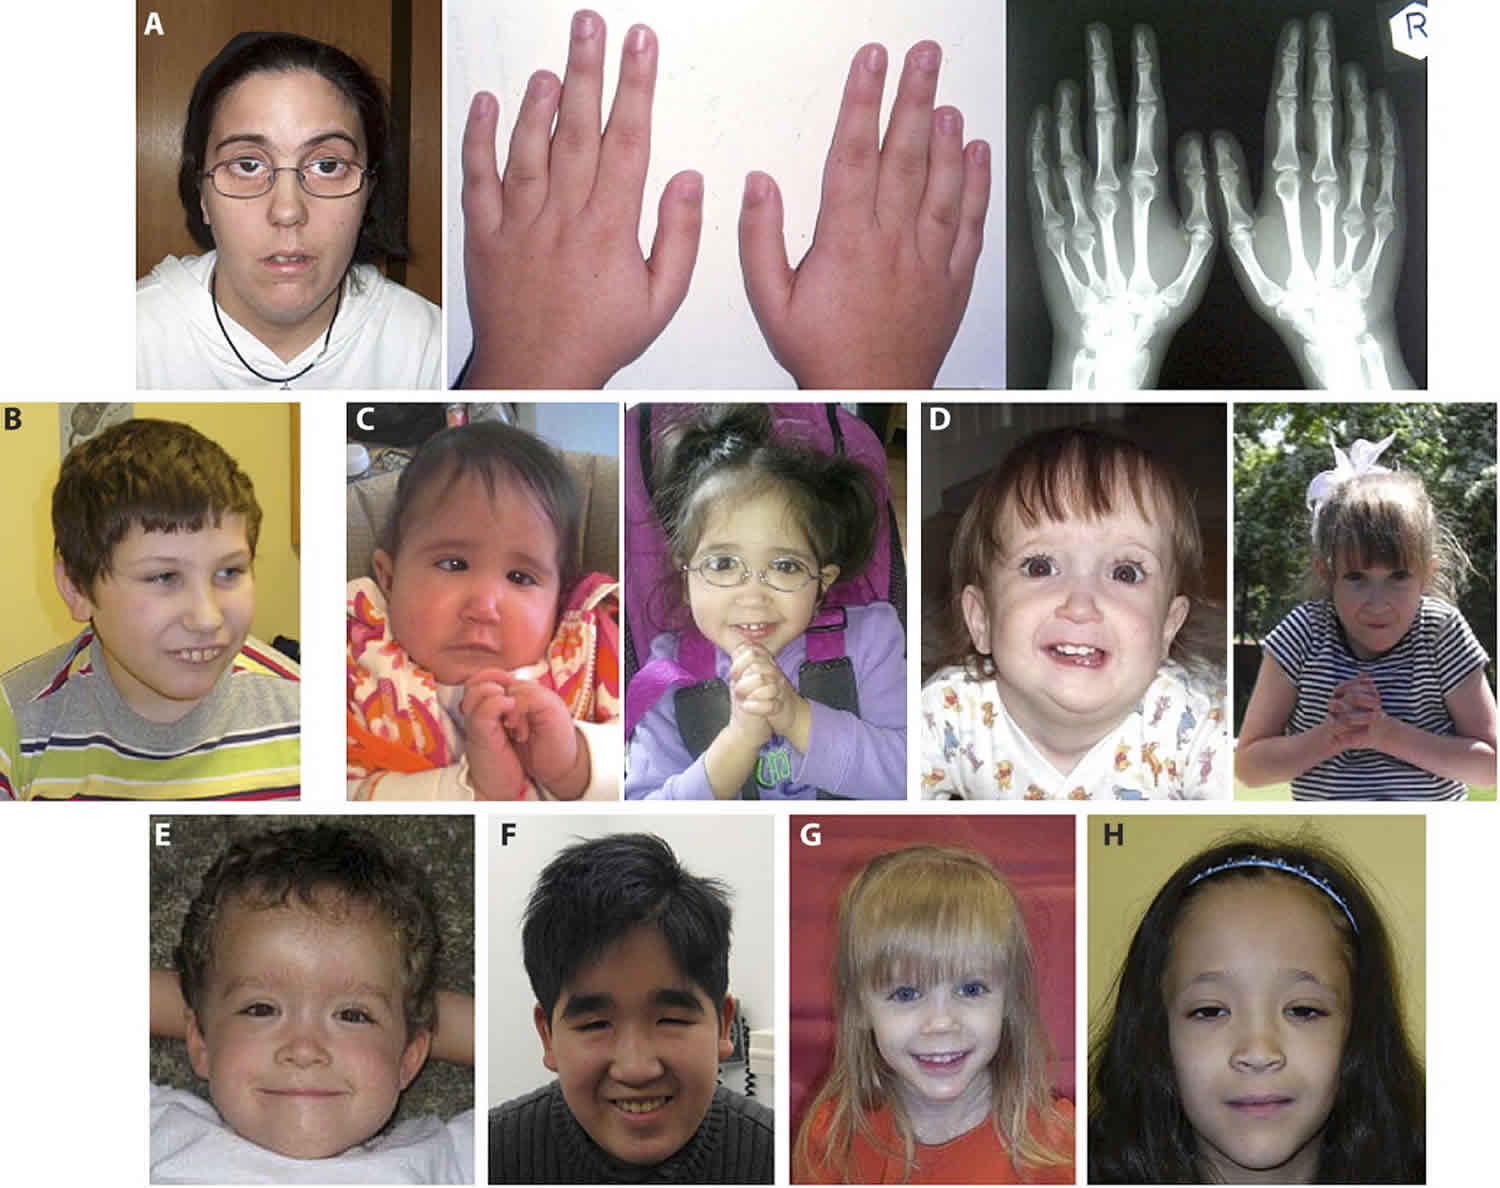 microdeletion syndrome